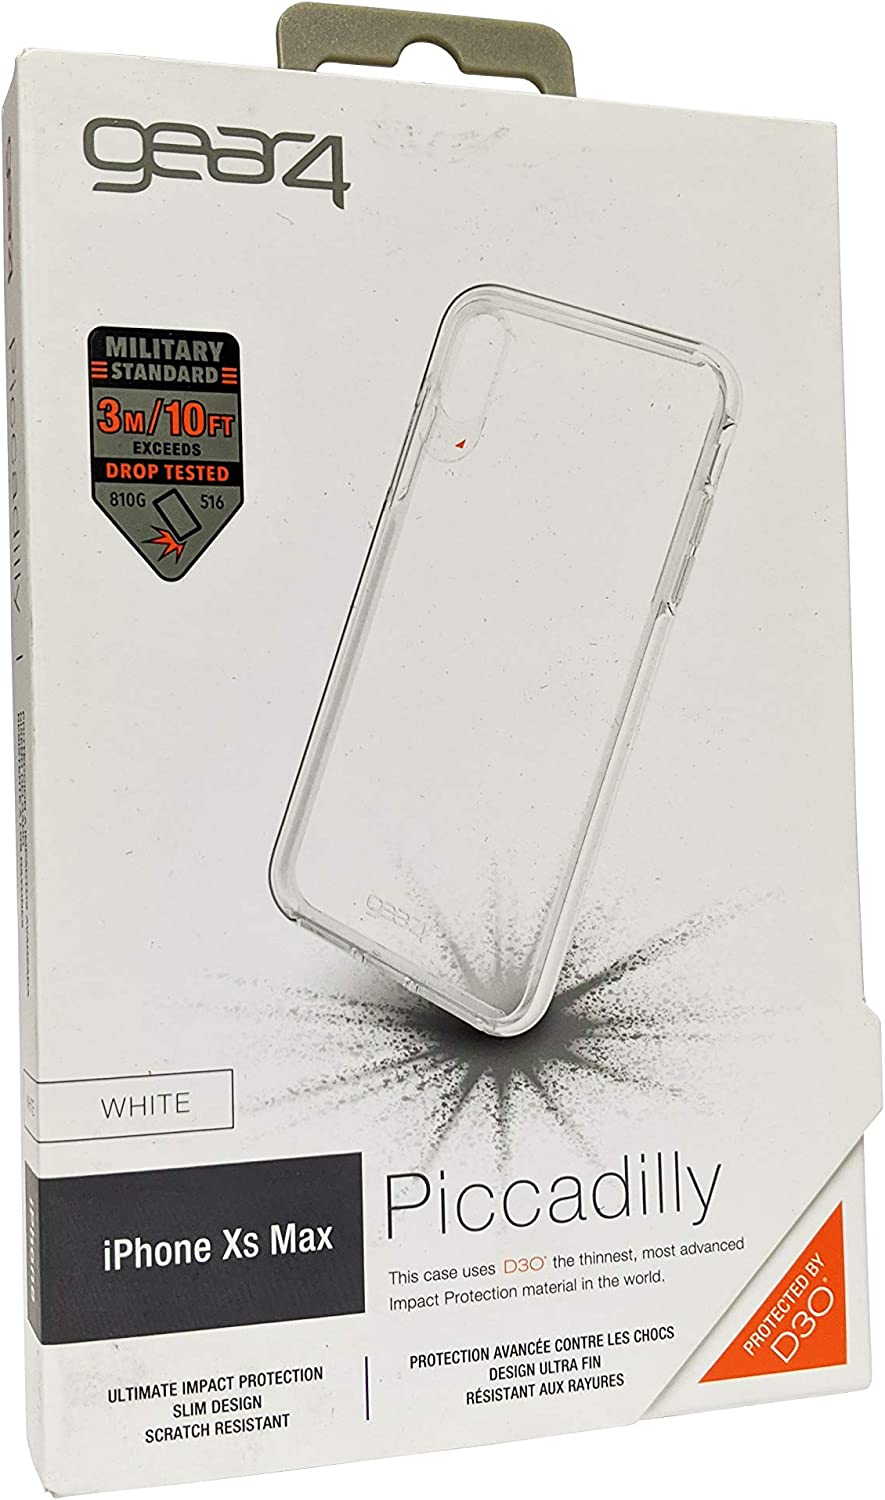 Gear4 Piccadilly Clear Case Advanced Impact Protection [ Protected D3O ], Slim, Tough Design iPhone Xs Max - White OPEN BOX